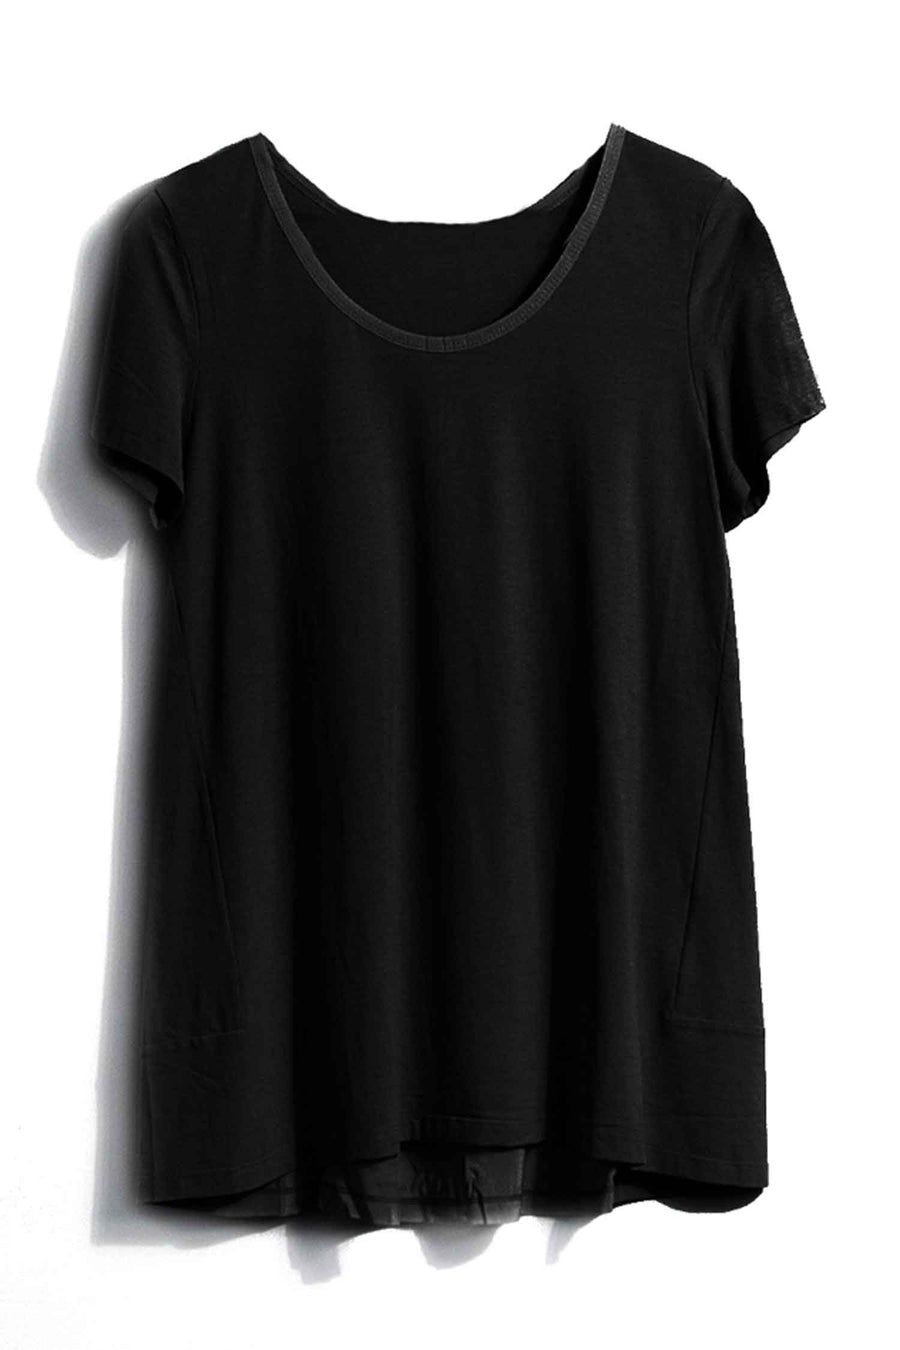 Lurin Top in Black